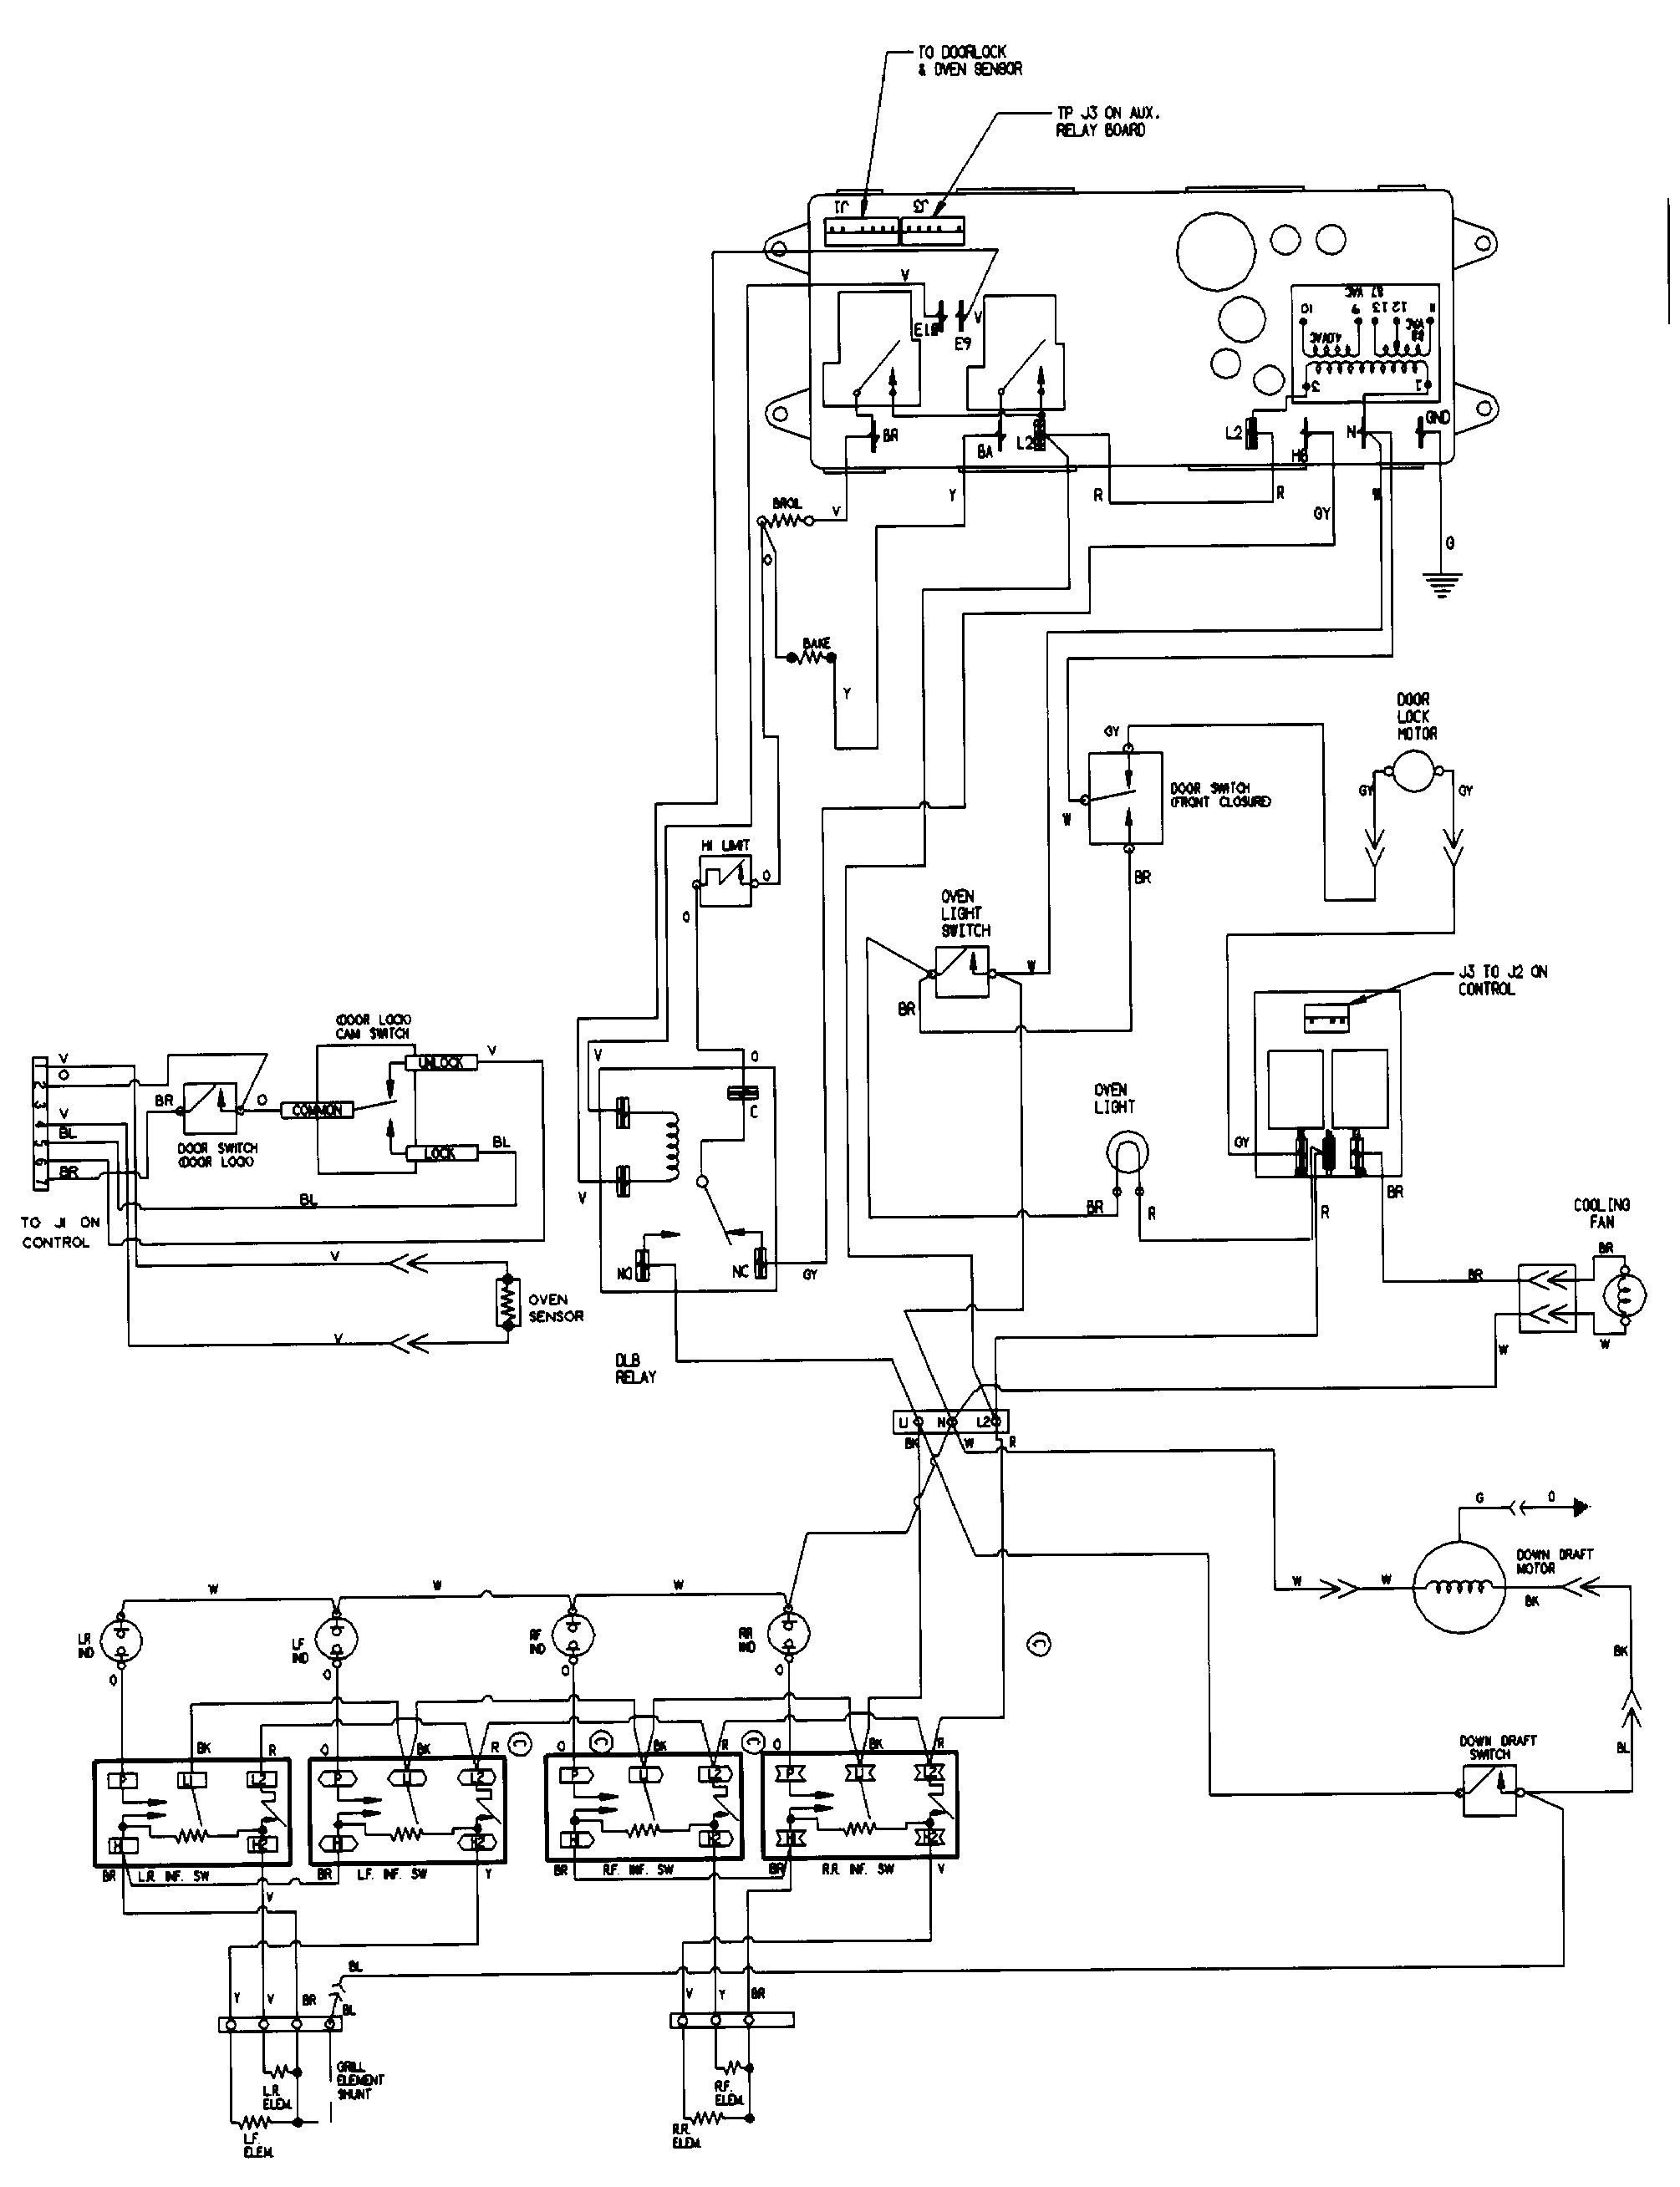 2010 Ford F 150 Door Lock Wiring Diagram For 1991 6bt Library2001 Pontiac Grand Prix 3 1 Engine Trusted